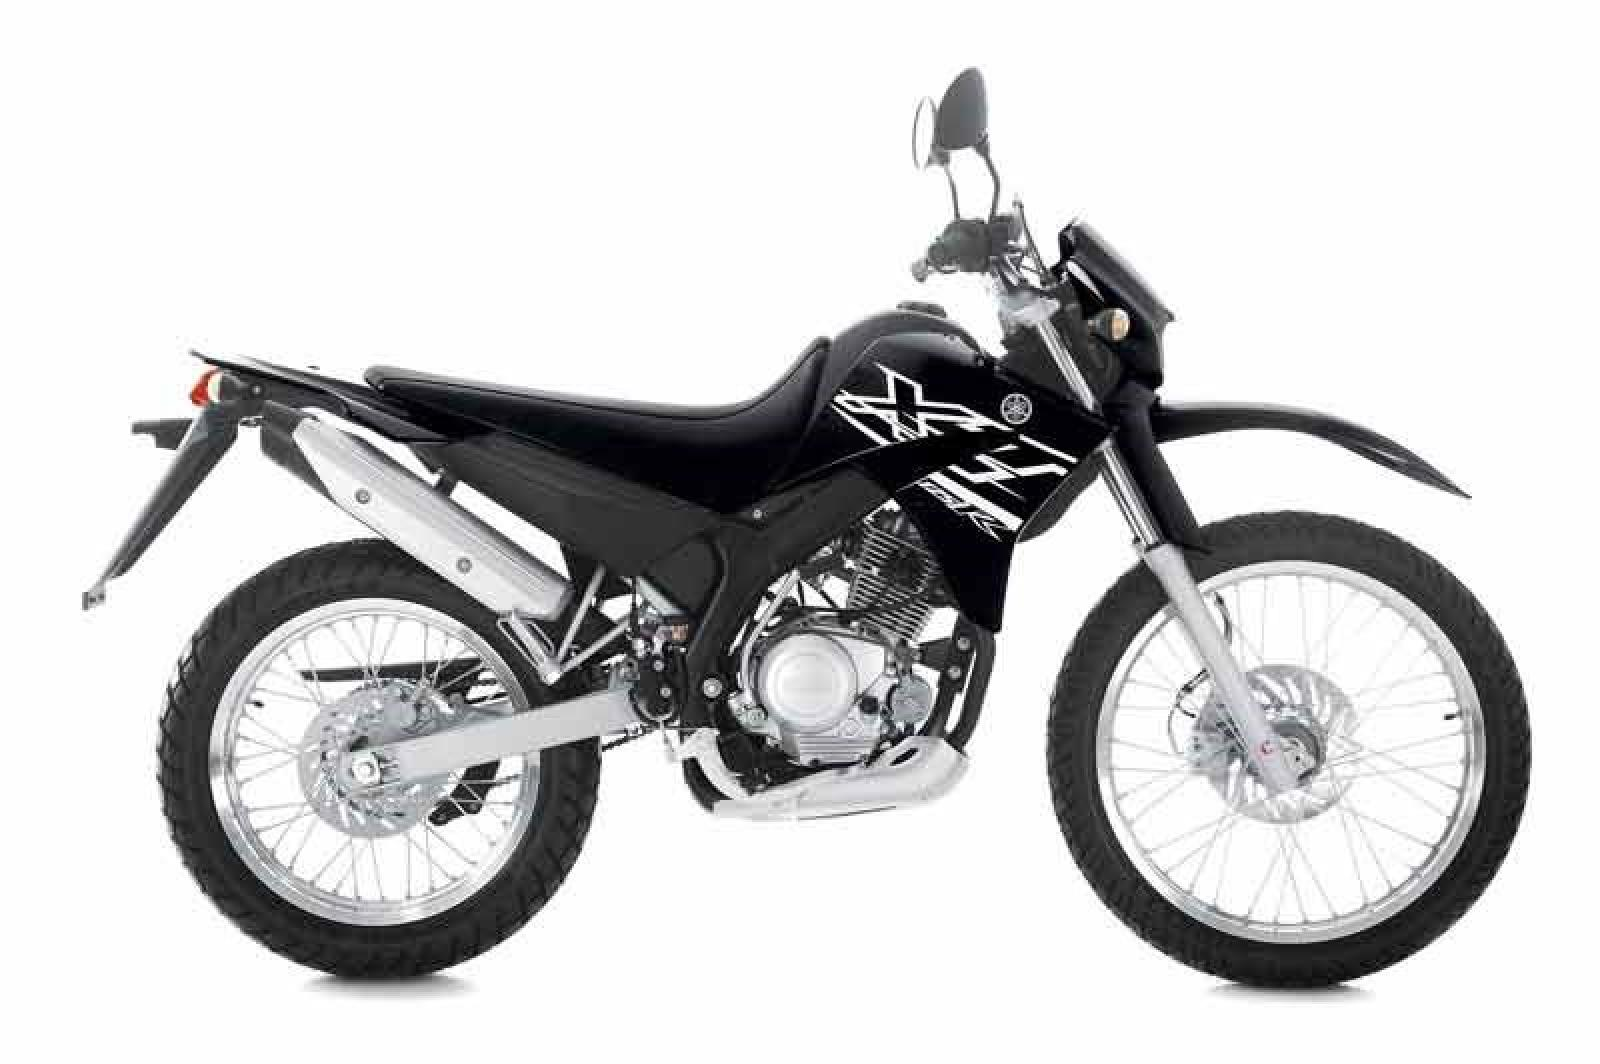 yamaha yamaha xt 125 r moto zombdrive com. Black Bedroom Furniture Sets. Home Design Ideas